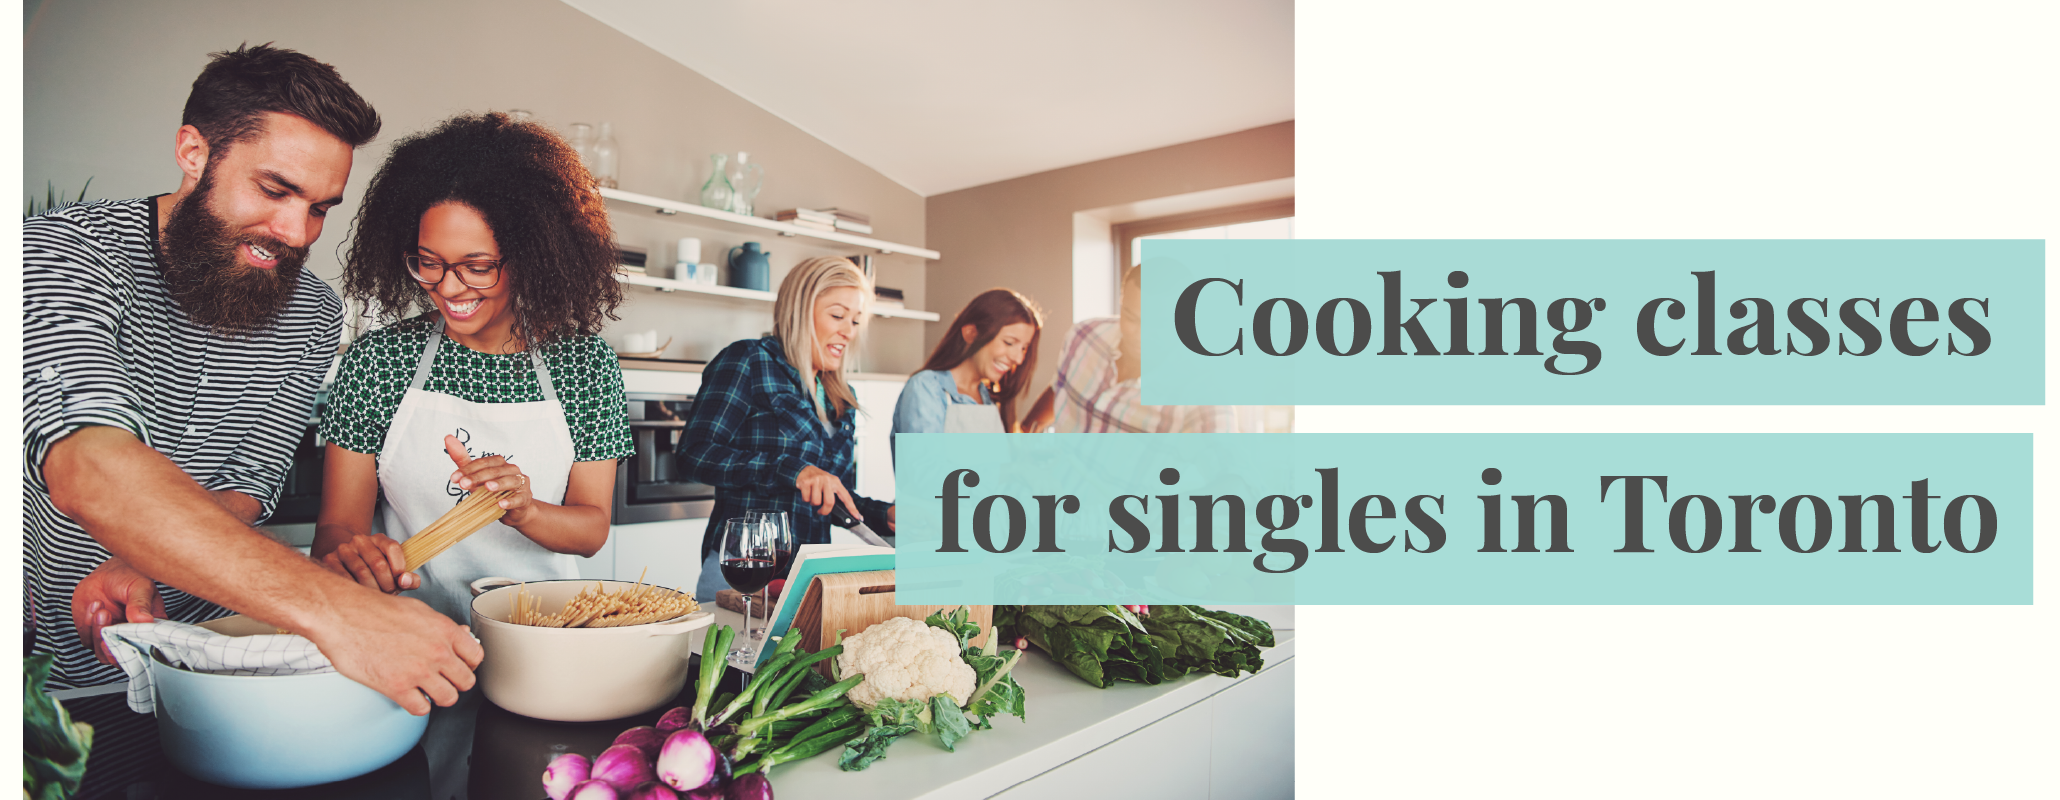 cooking classes for singles toronto